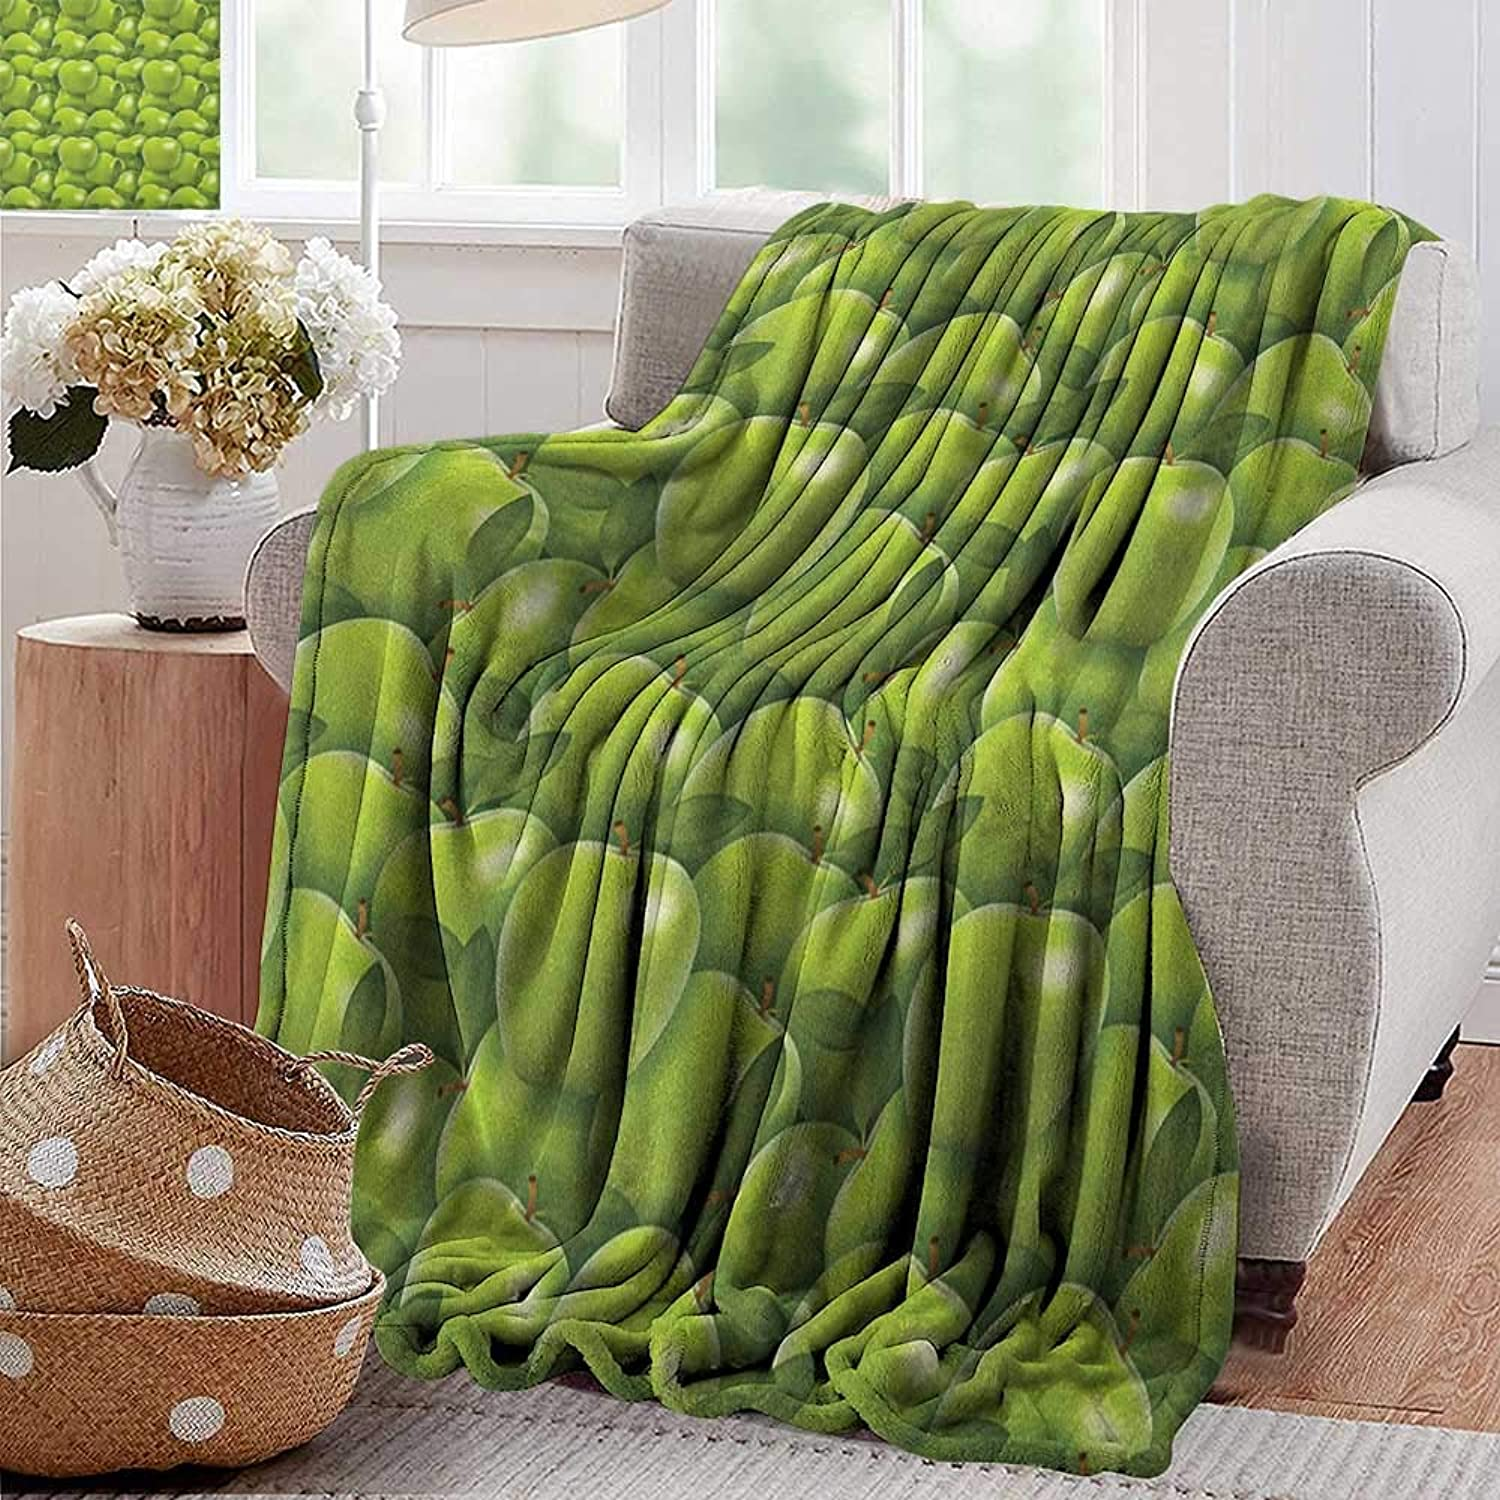 Weighted Blanket for Kids,Apple,Agriculture Harvest Pattern with Granny Smith Apple Drawing Autumn Fruit, Apple Green Fern Green,Weighted Blanket for Adults Kids, Better Deeper Sleep 35 x60